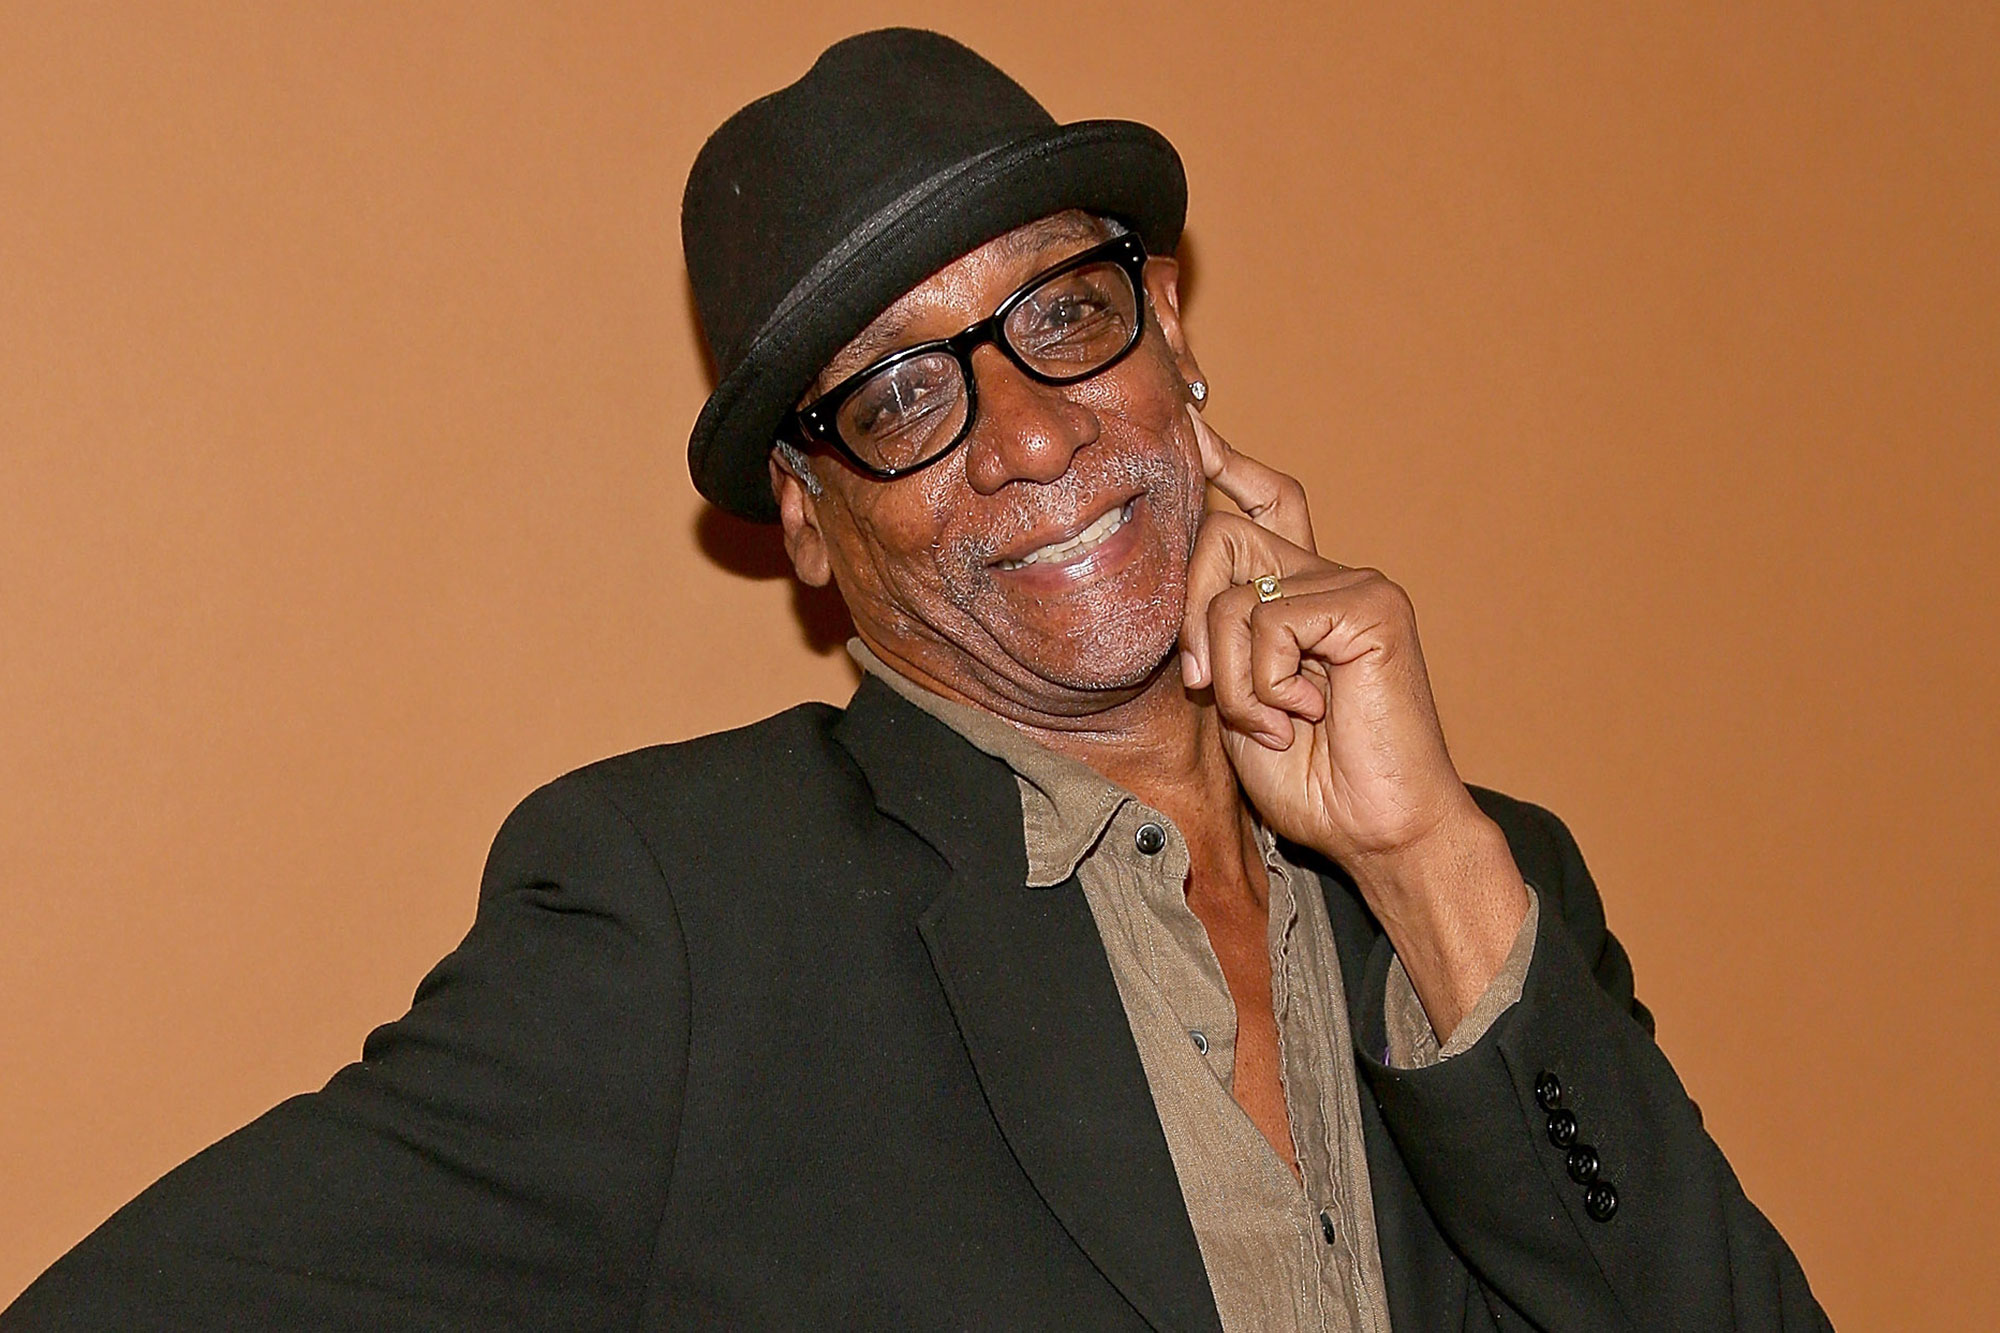 spike-lee-sadly-reveals-that-legendary-actor-thomas-jefferson-byrd-has-been-murdered-fans-react-to-shocking-news